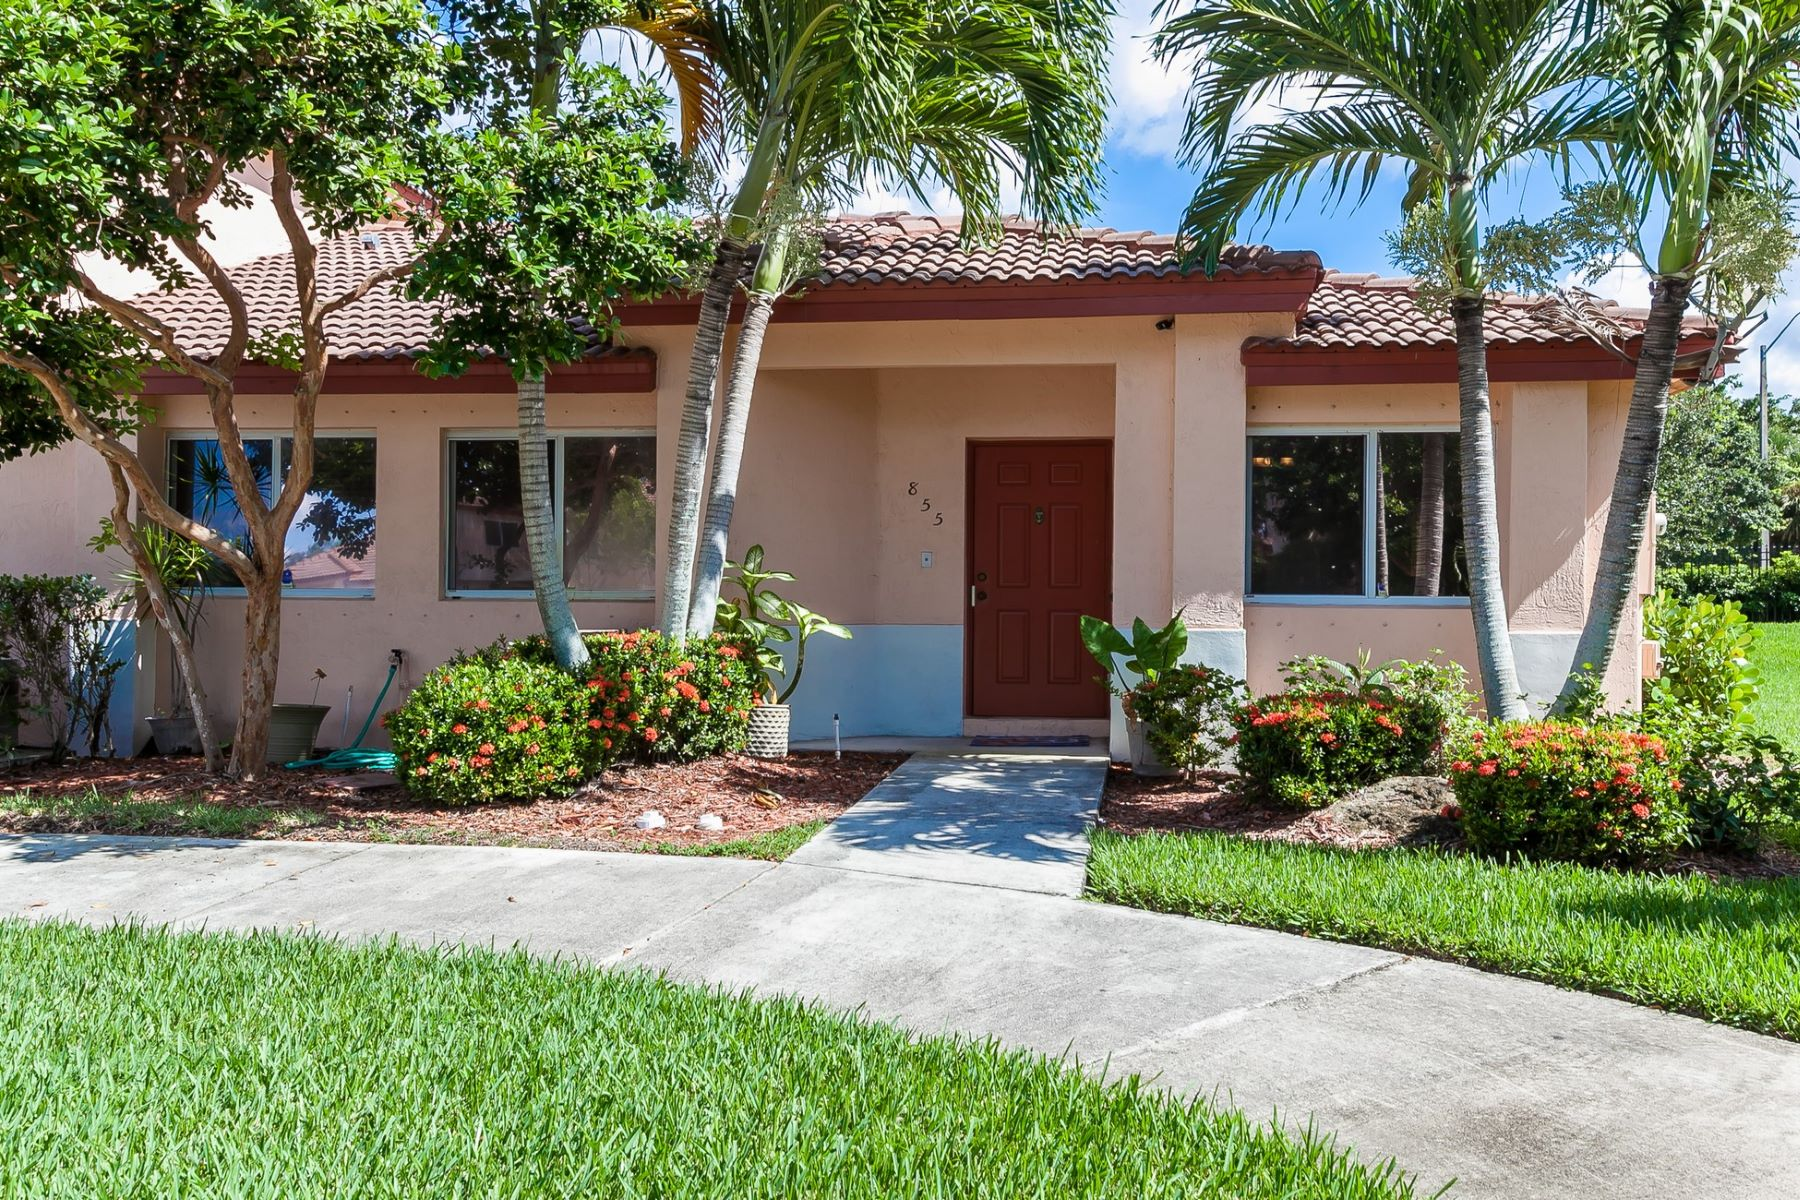 House for Rent at 855 NW 208 CR. 855 NW 208 CIRCLE # 855 Pembroke Pines, Florida 33029 United States